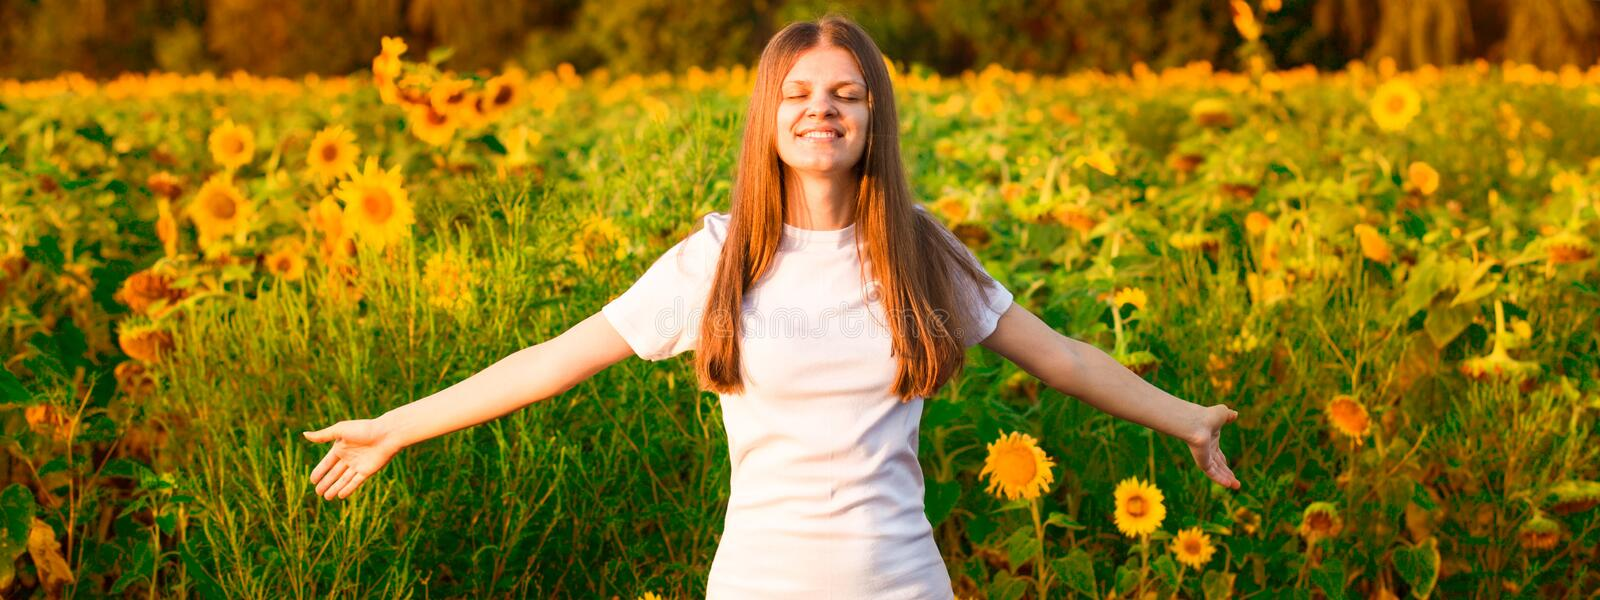 Young woman with long hair in sunflower Field with hands up. girl outdoors enjoying nature stock image